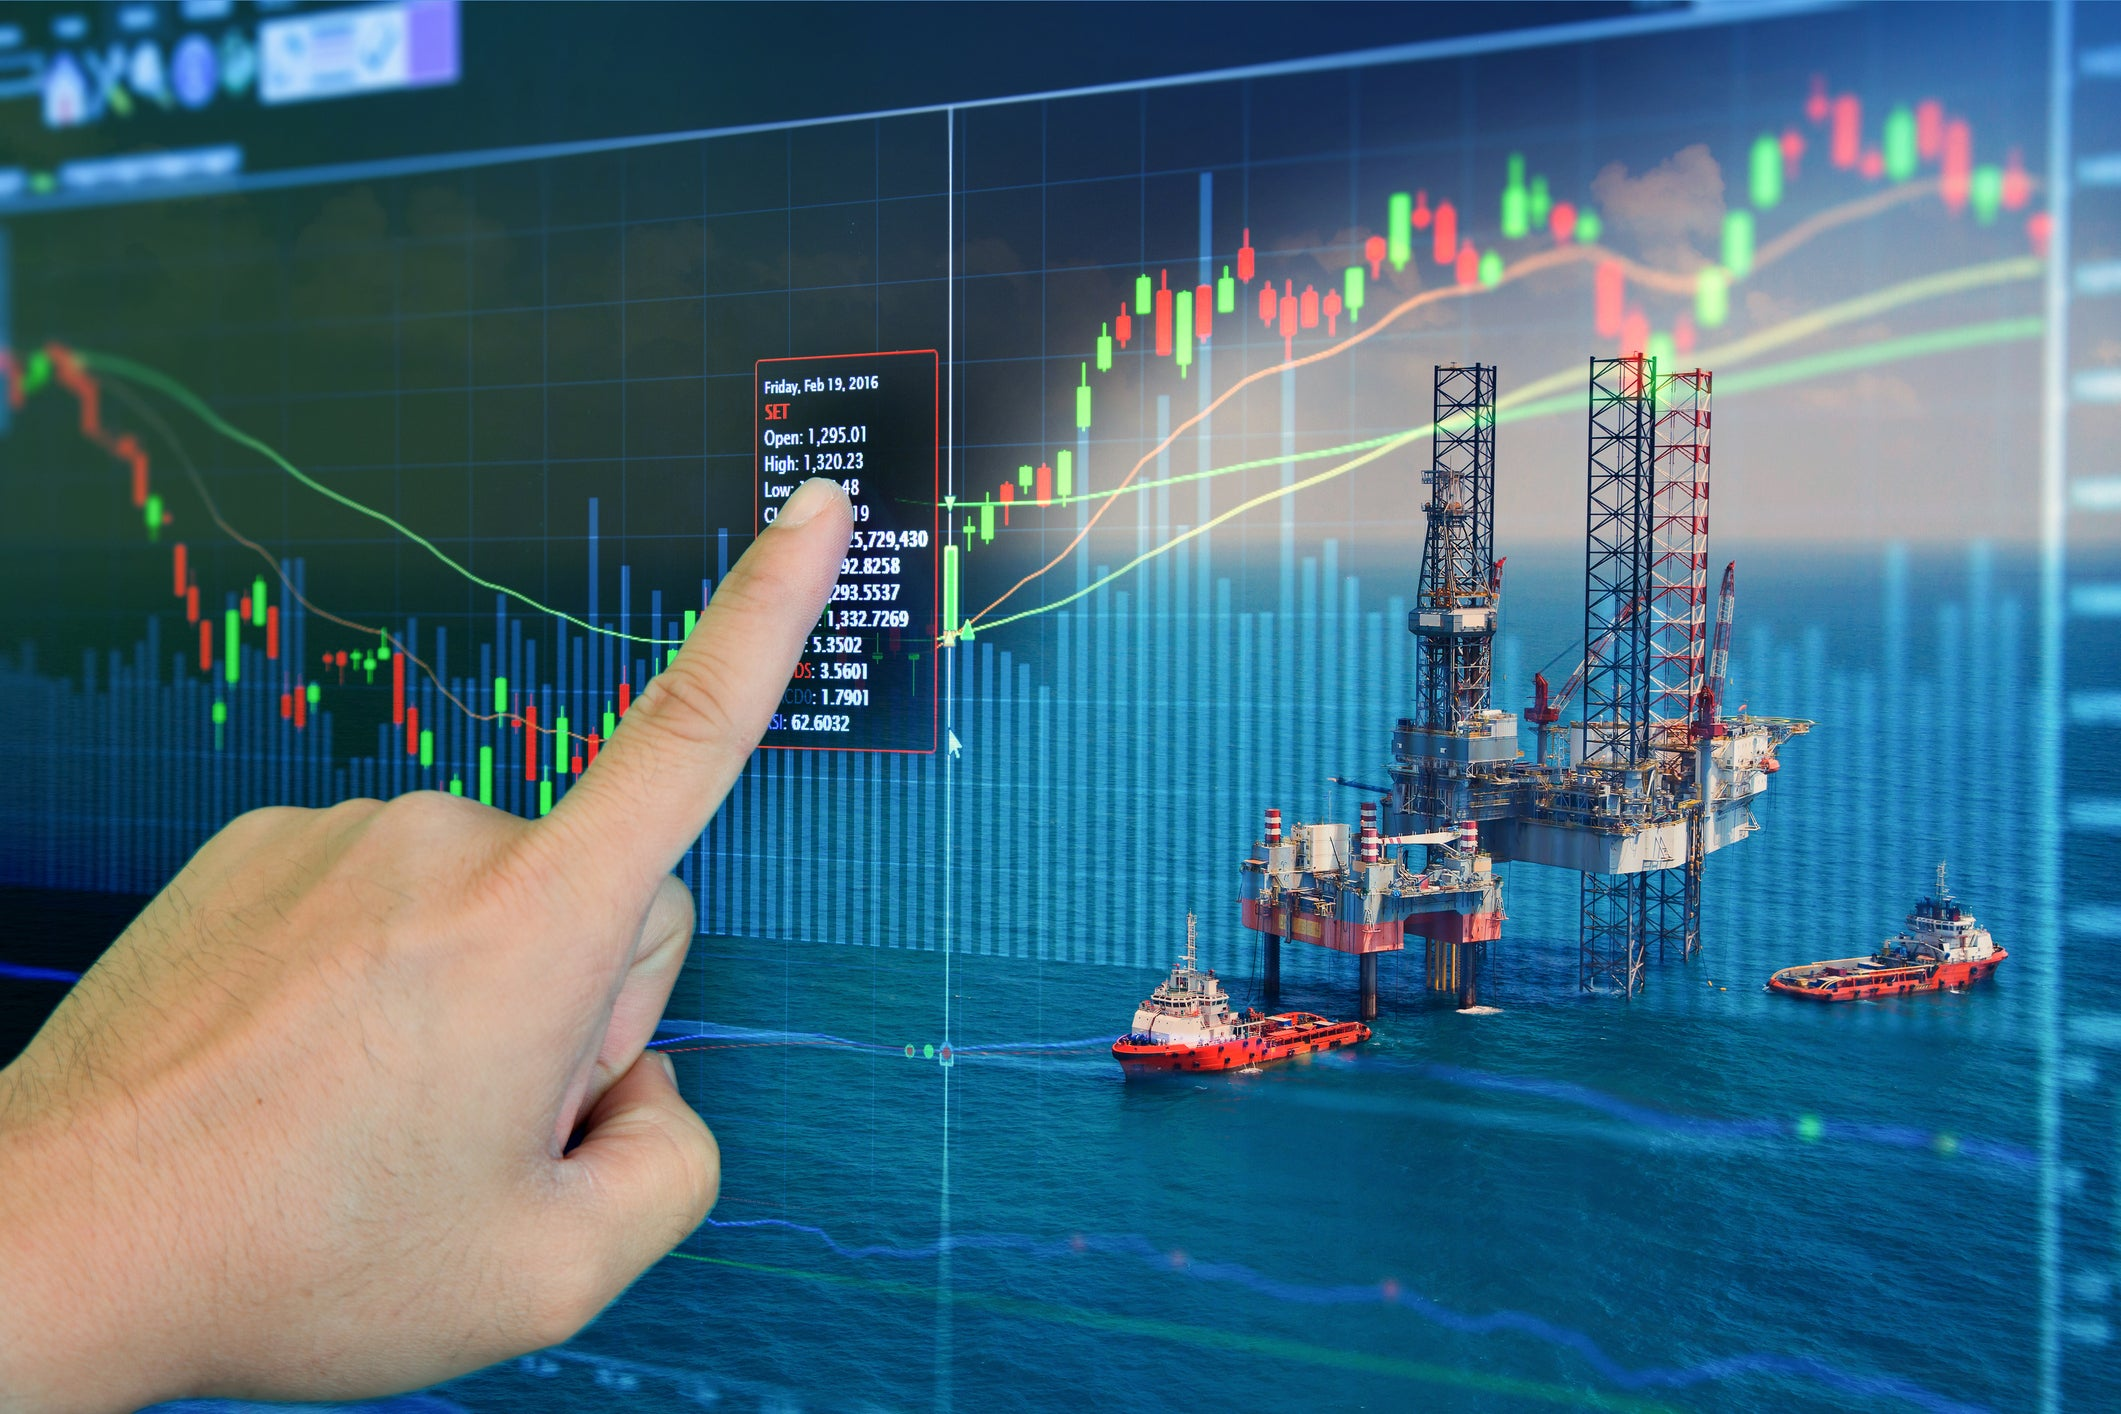 Stock chart superimposed over picture of offshore rig.